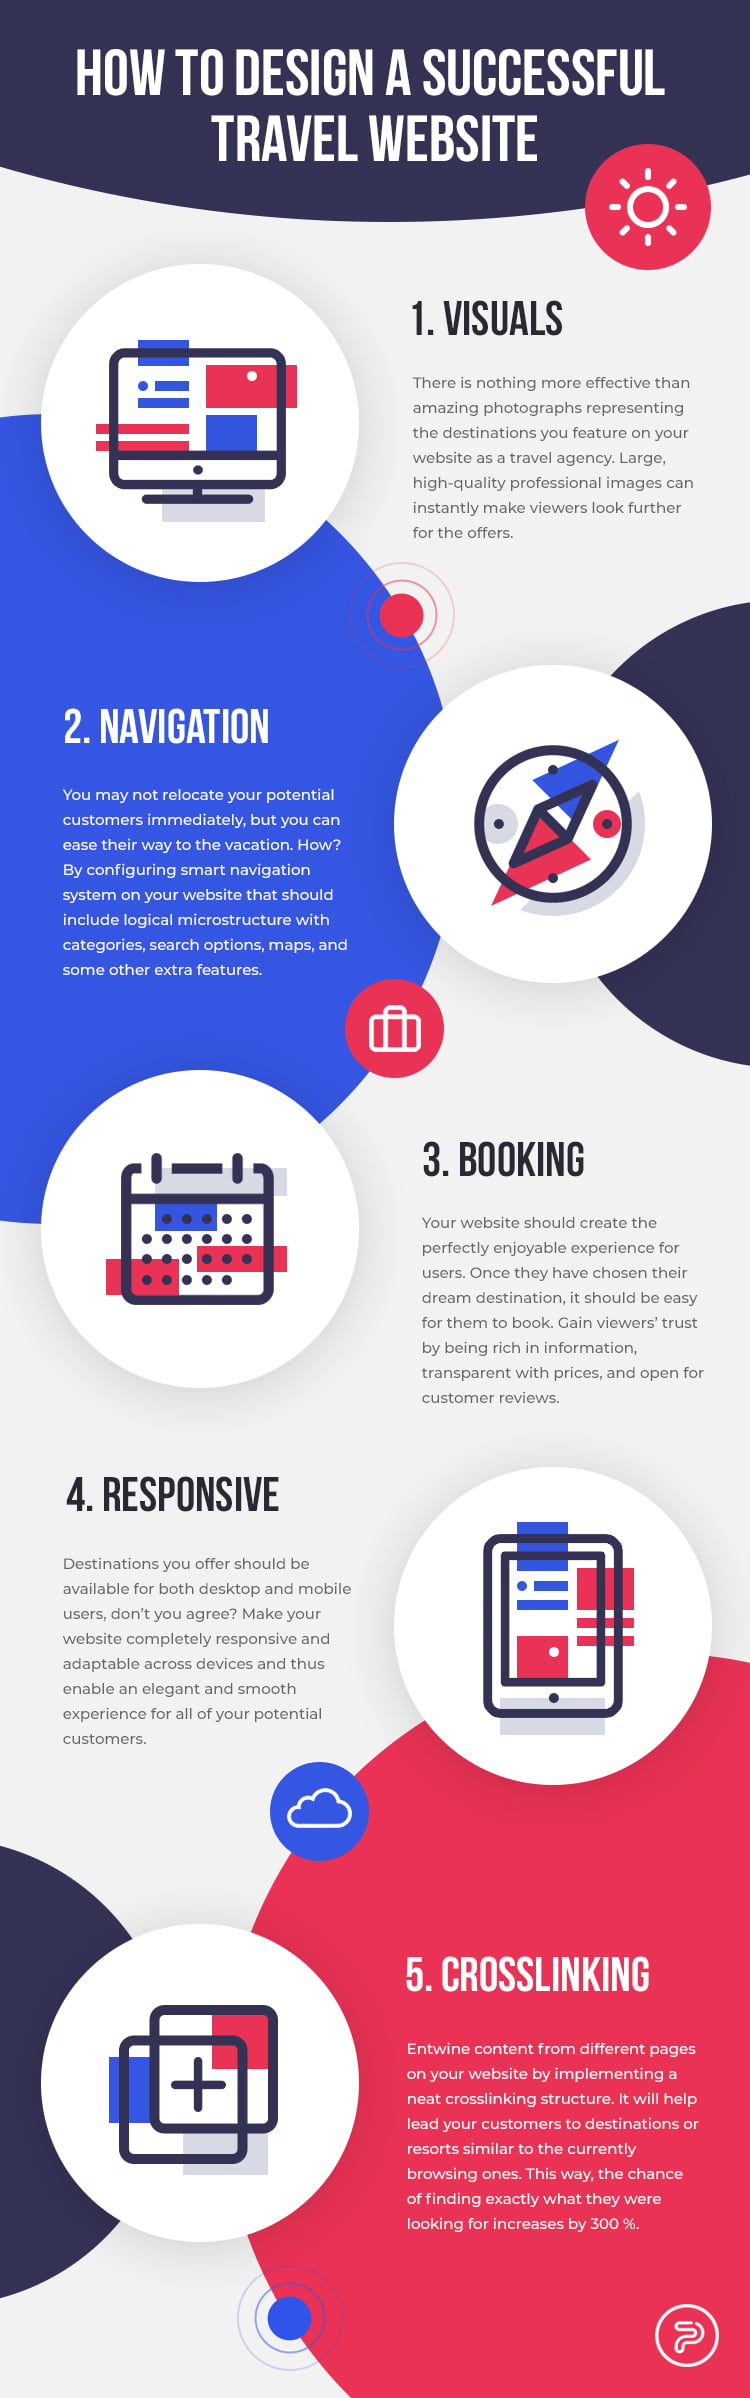 travel agency website infographic